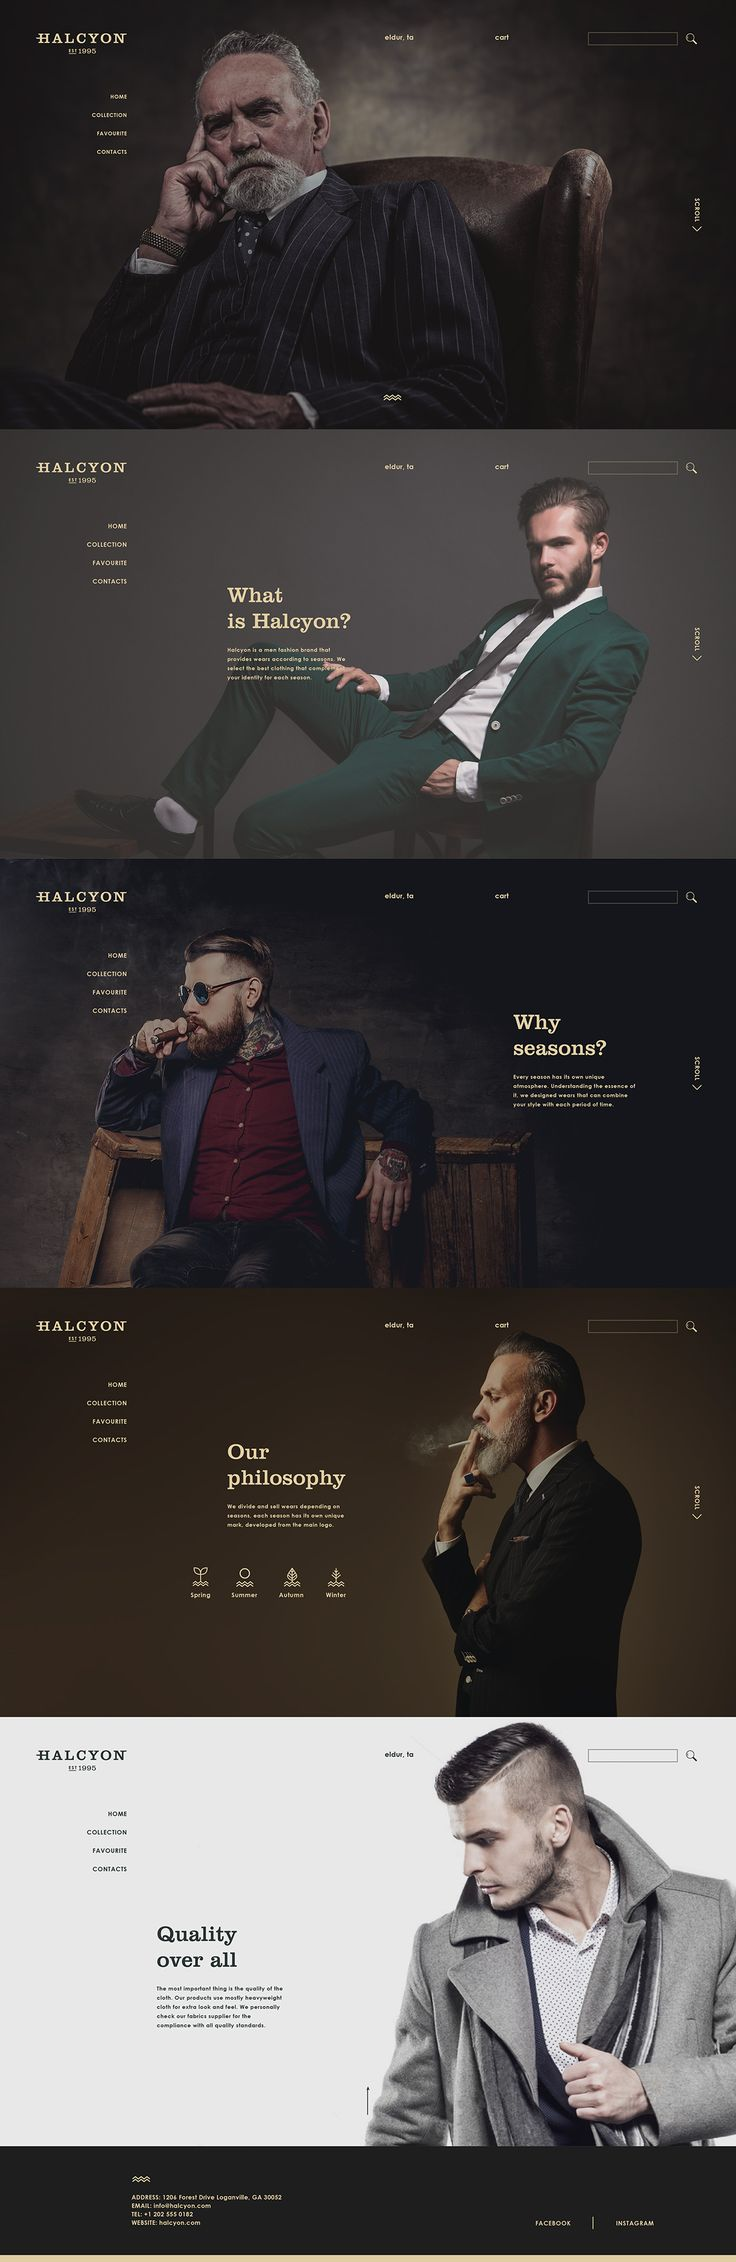 A brand identity, website design for Halcyon - a men fashion brand that specializes in suits for men. The goal is to create a modern, minimal look but also evoke the classy feel.